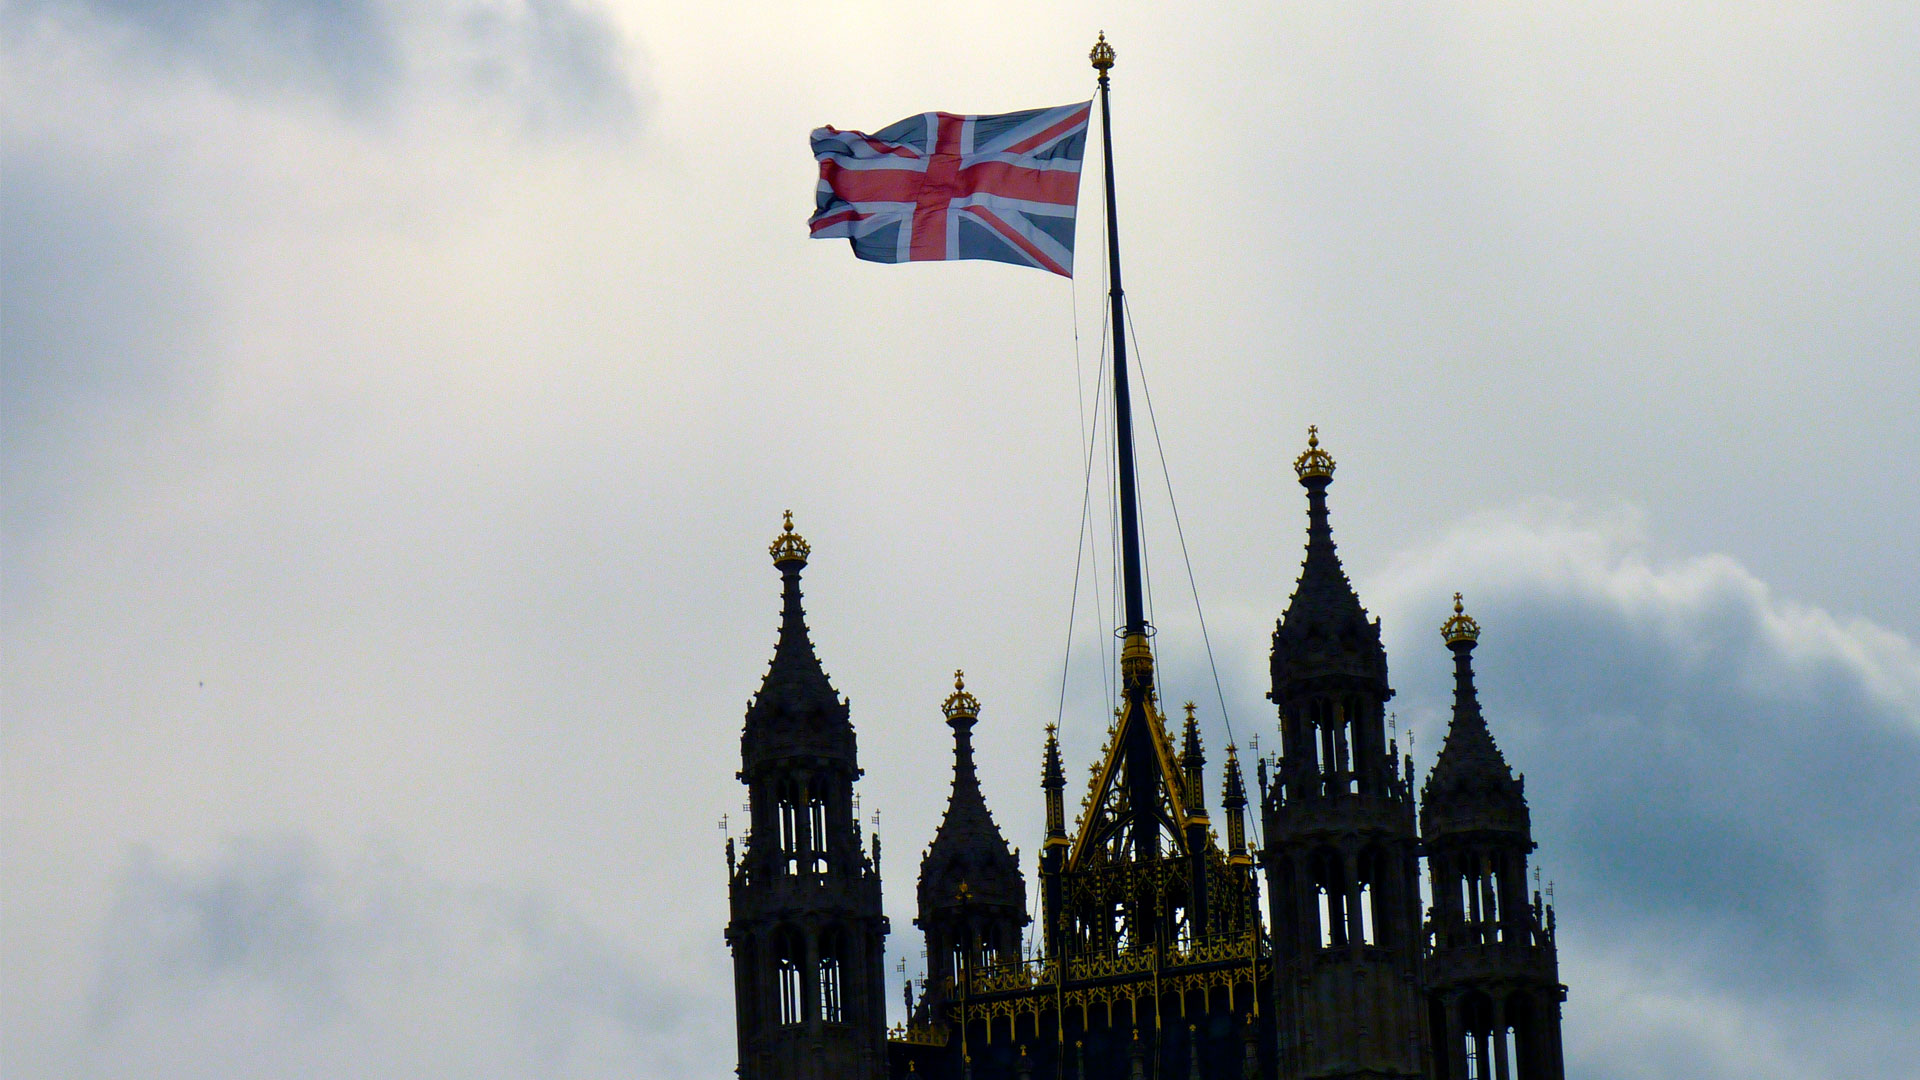 The Union Jack flying atop the Victoria Tower of the UK Houses of Parliament.